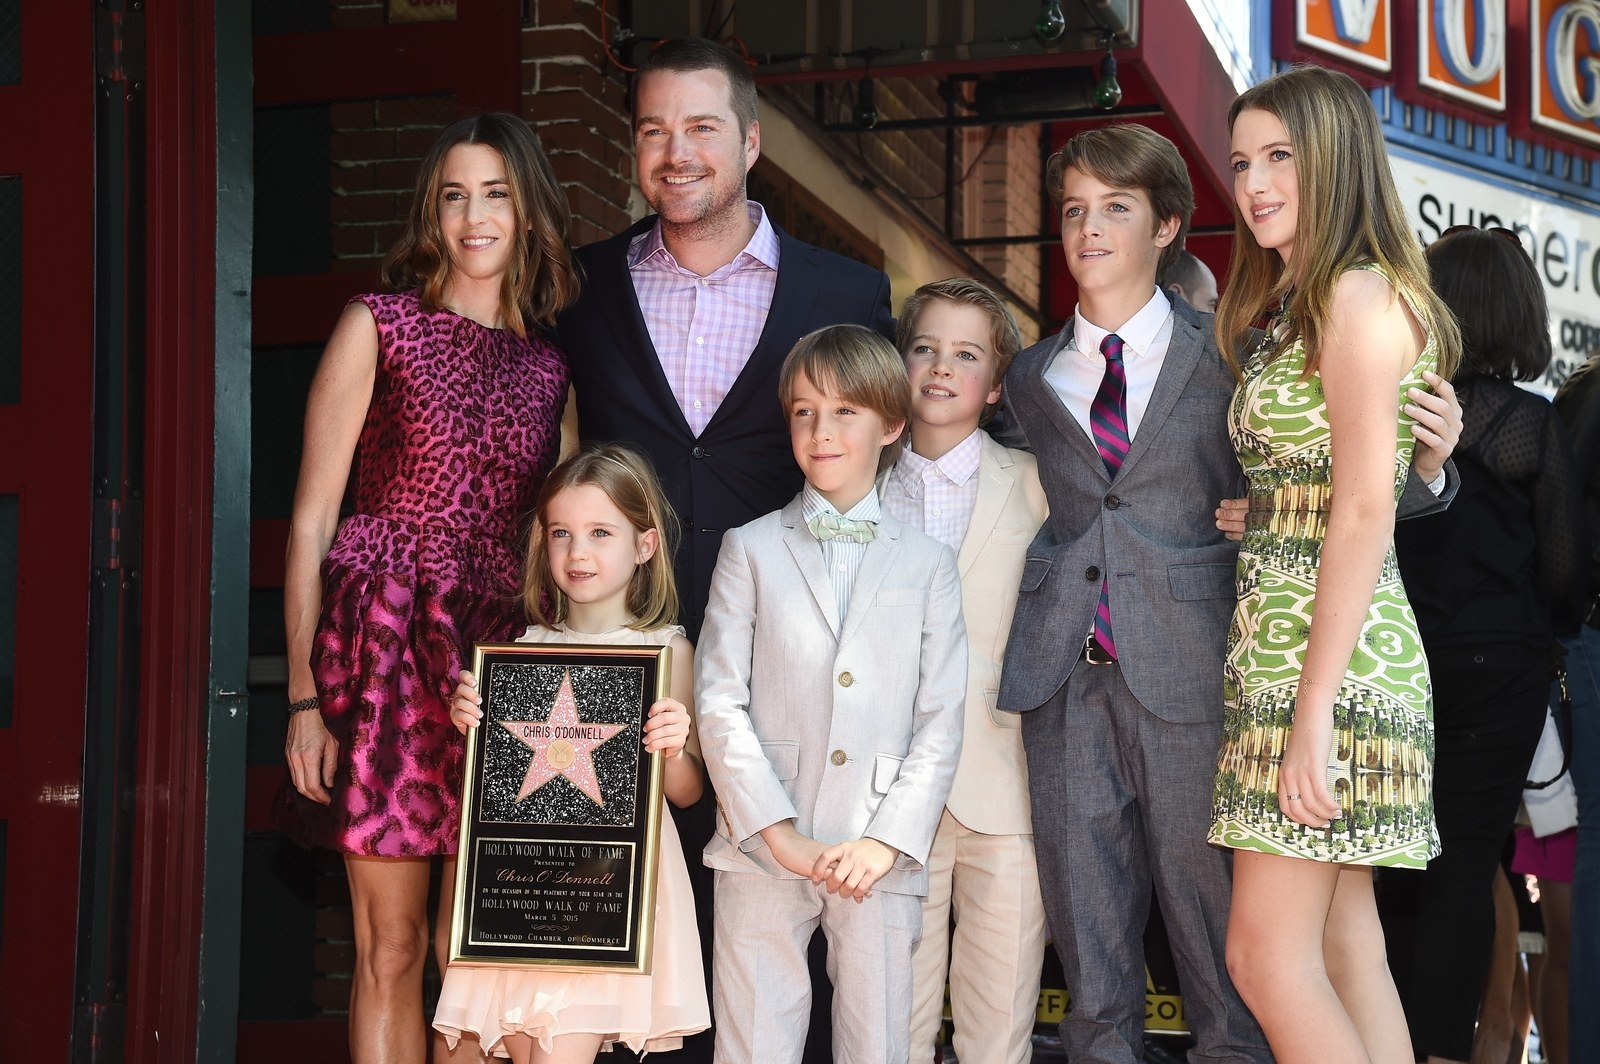 Chris O'Donnell: 5 kids -  I like that they are in order of height.